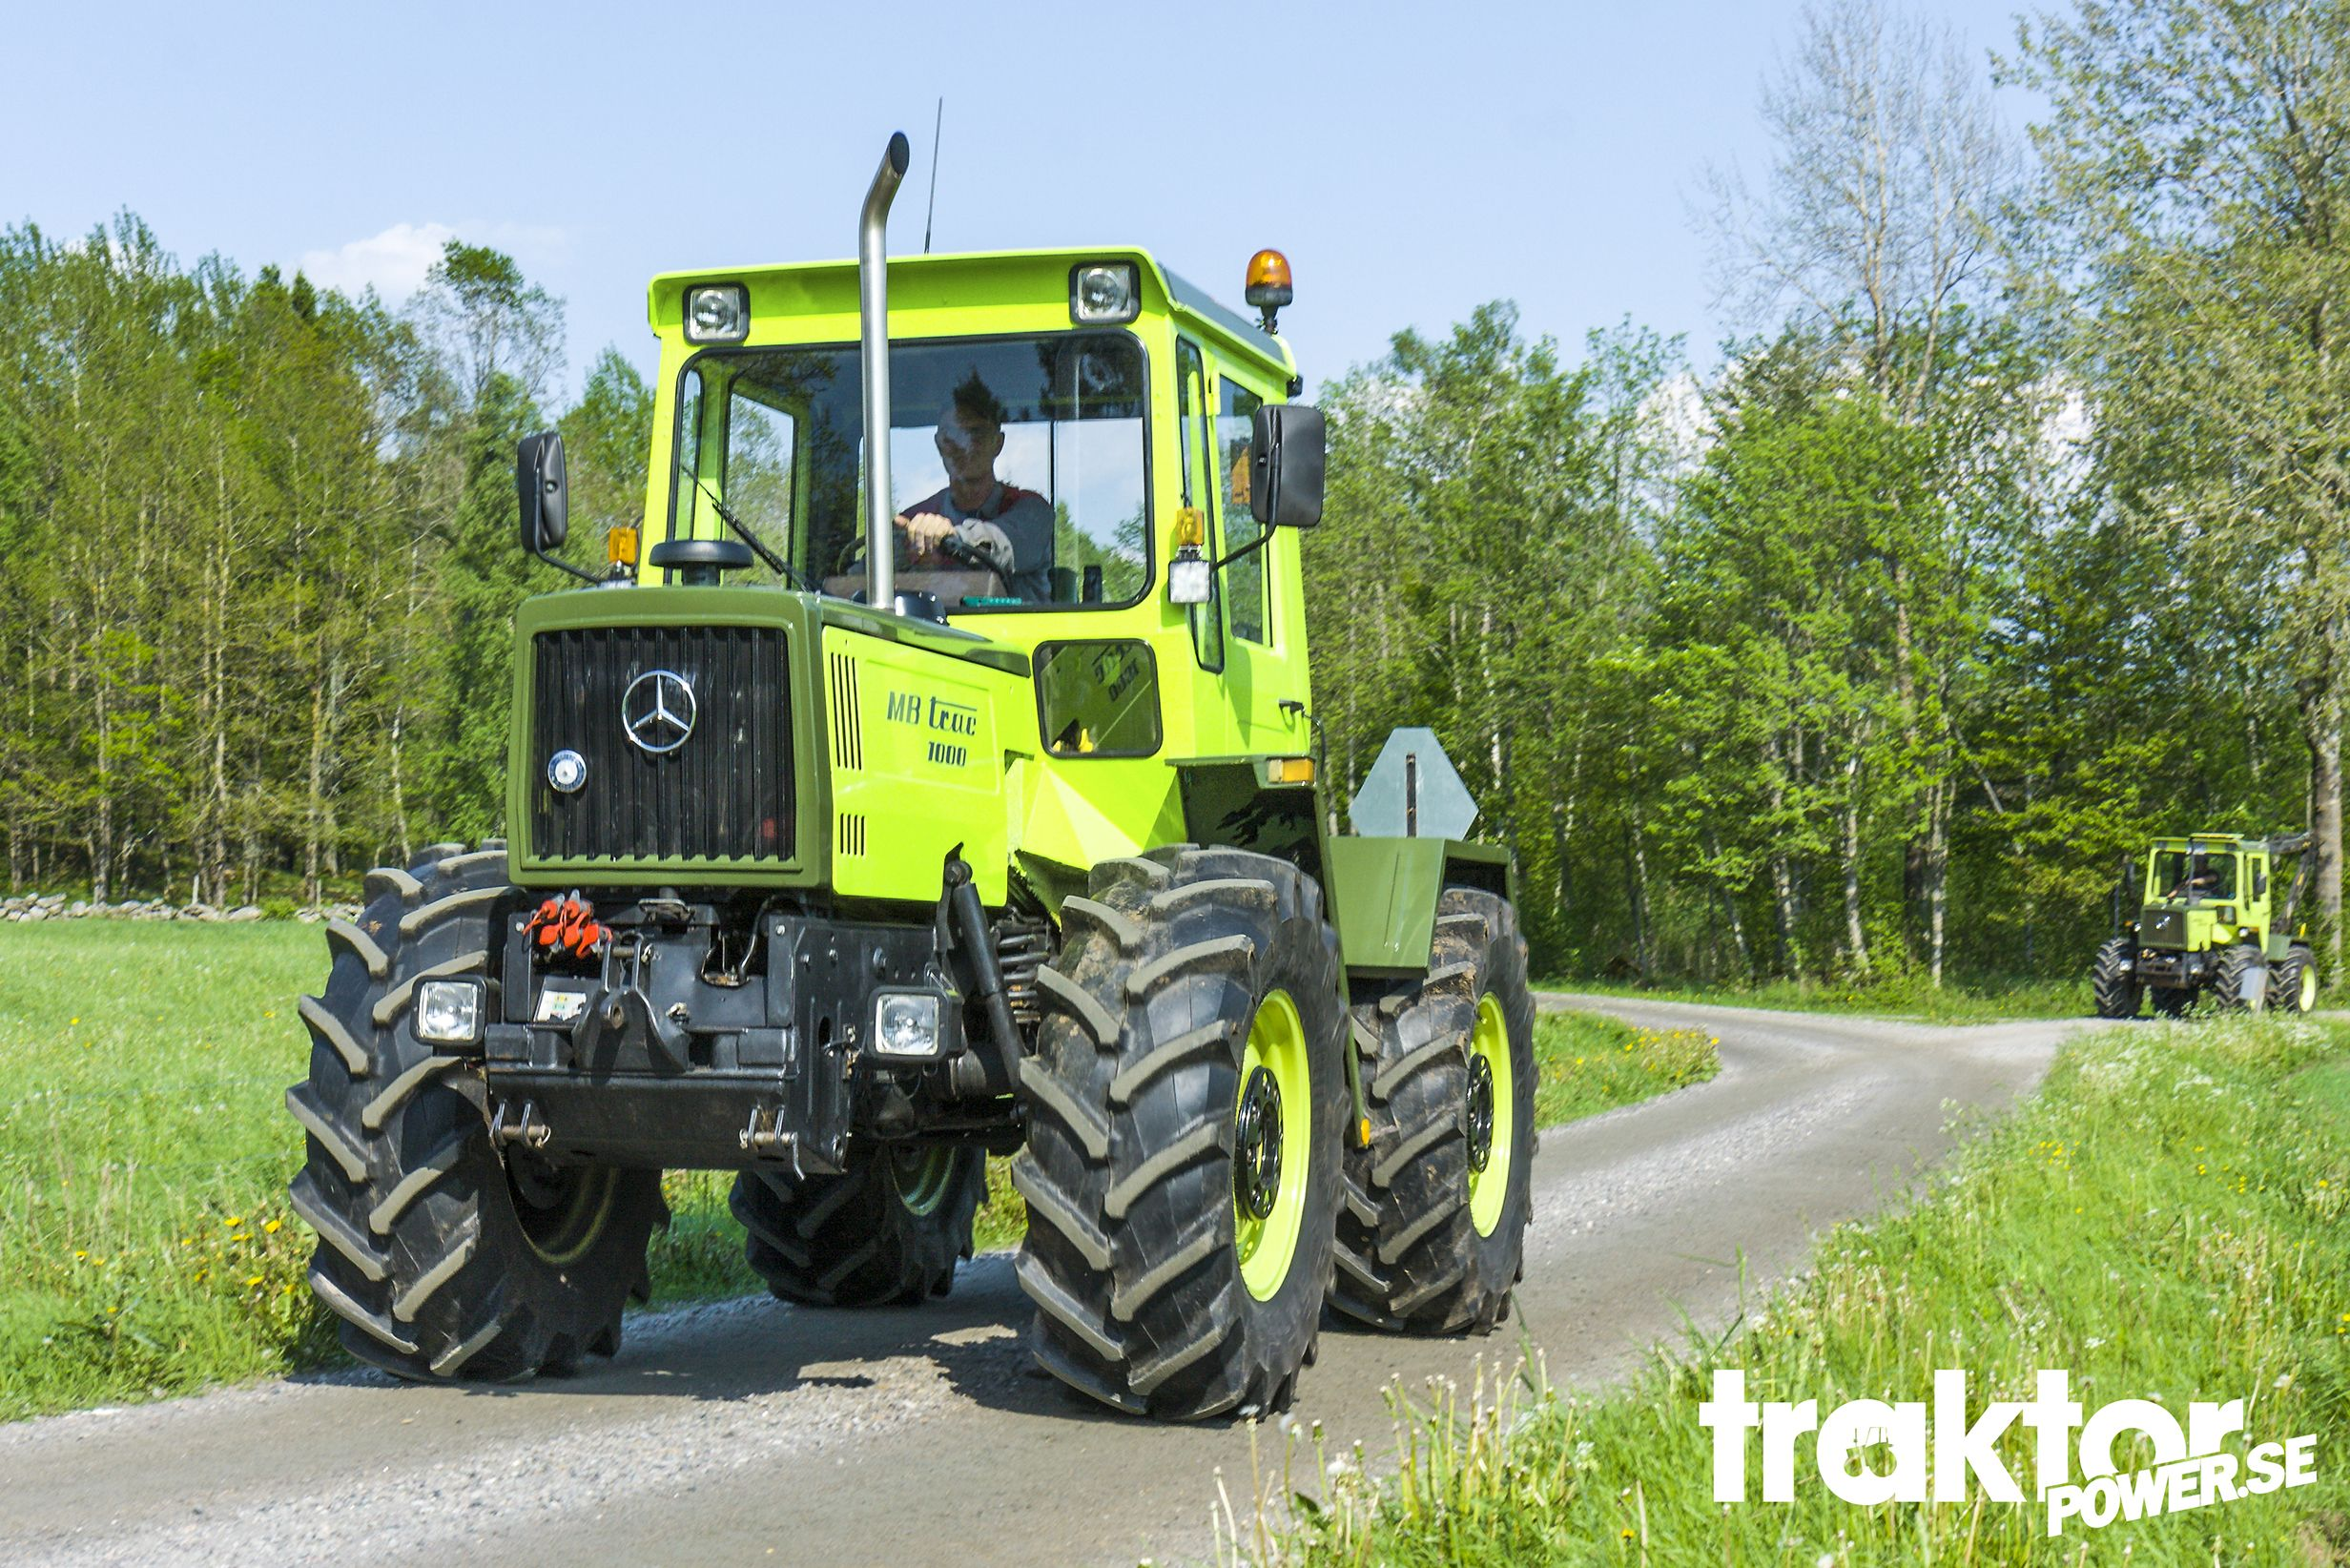 Berühmt MB-trac 1000 in Västergötland, Sweden. | Farm & other equipment &YT_36